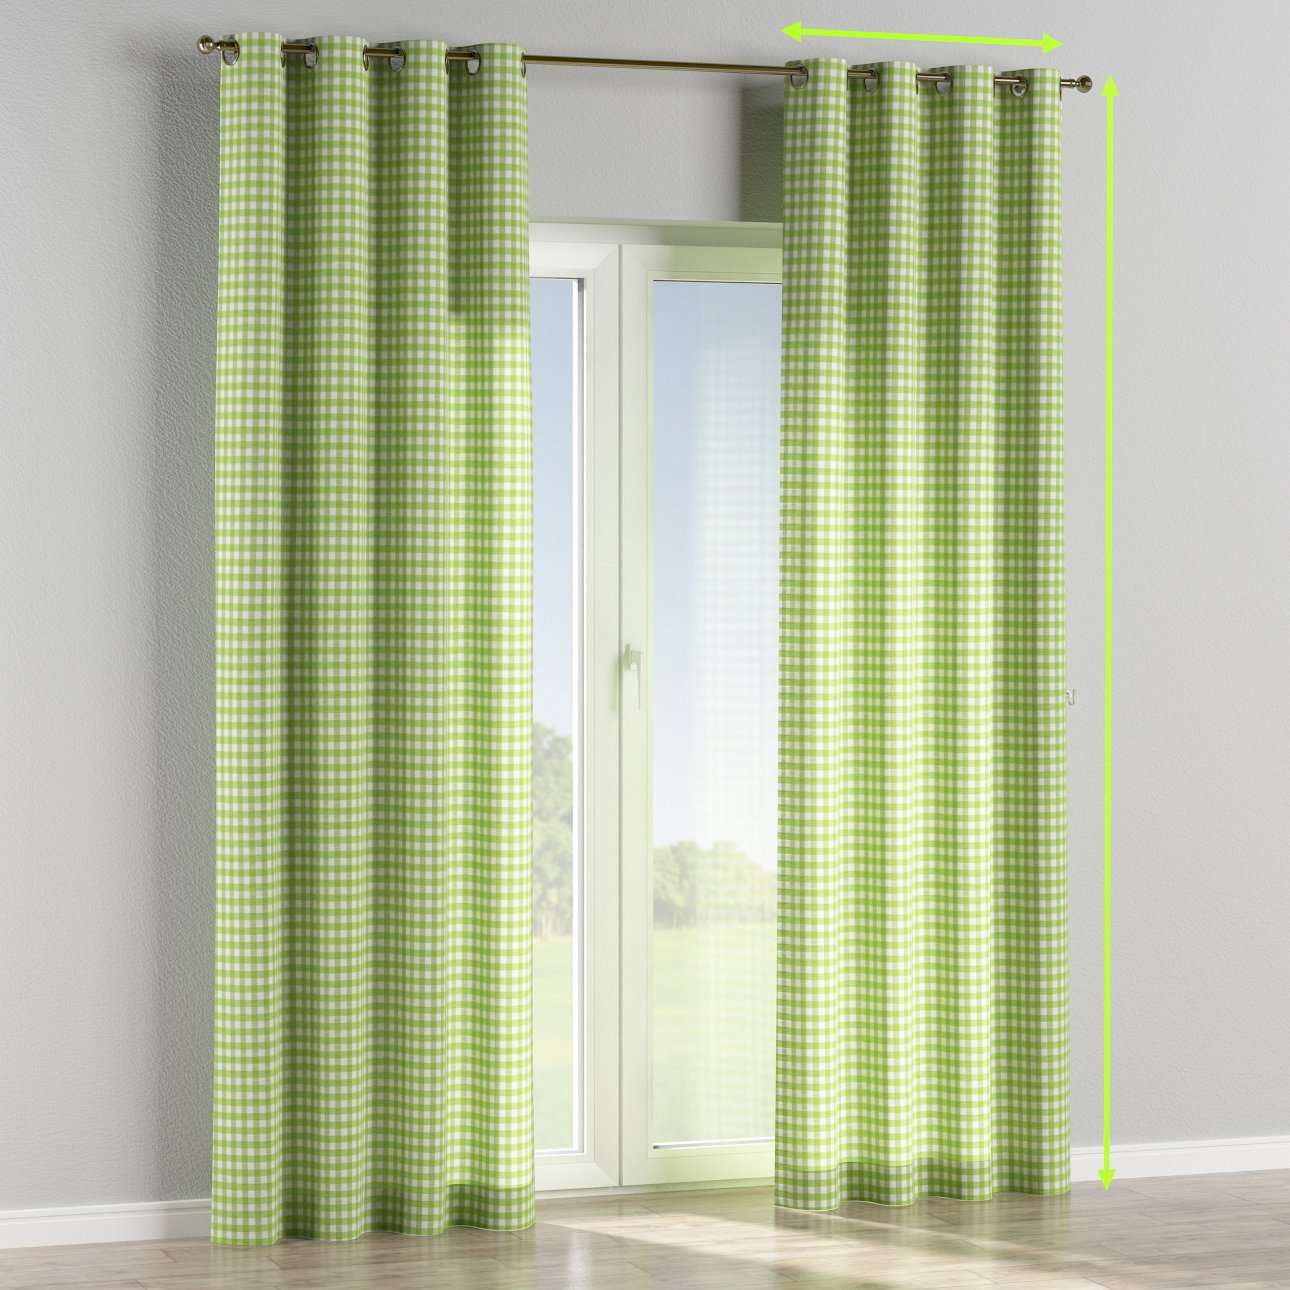 Eyelet lined curtains in collection Quadro, fabric: 136-34